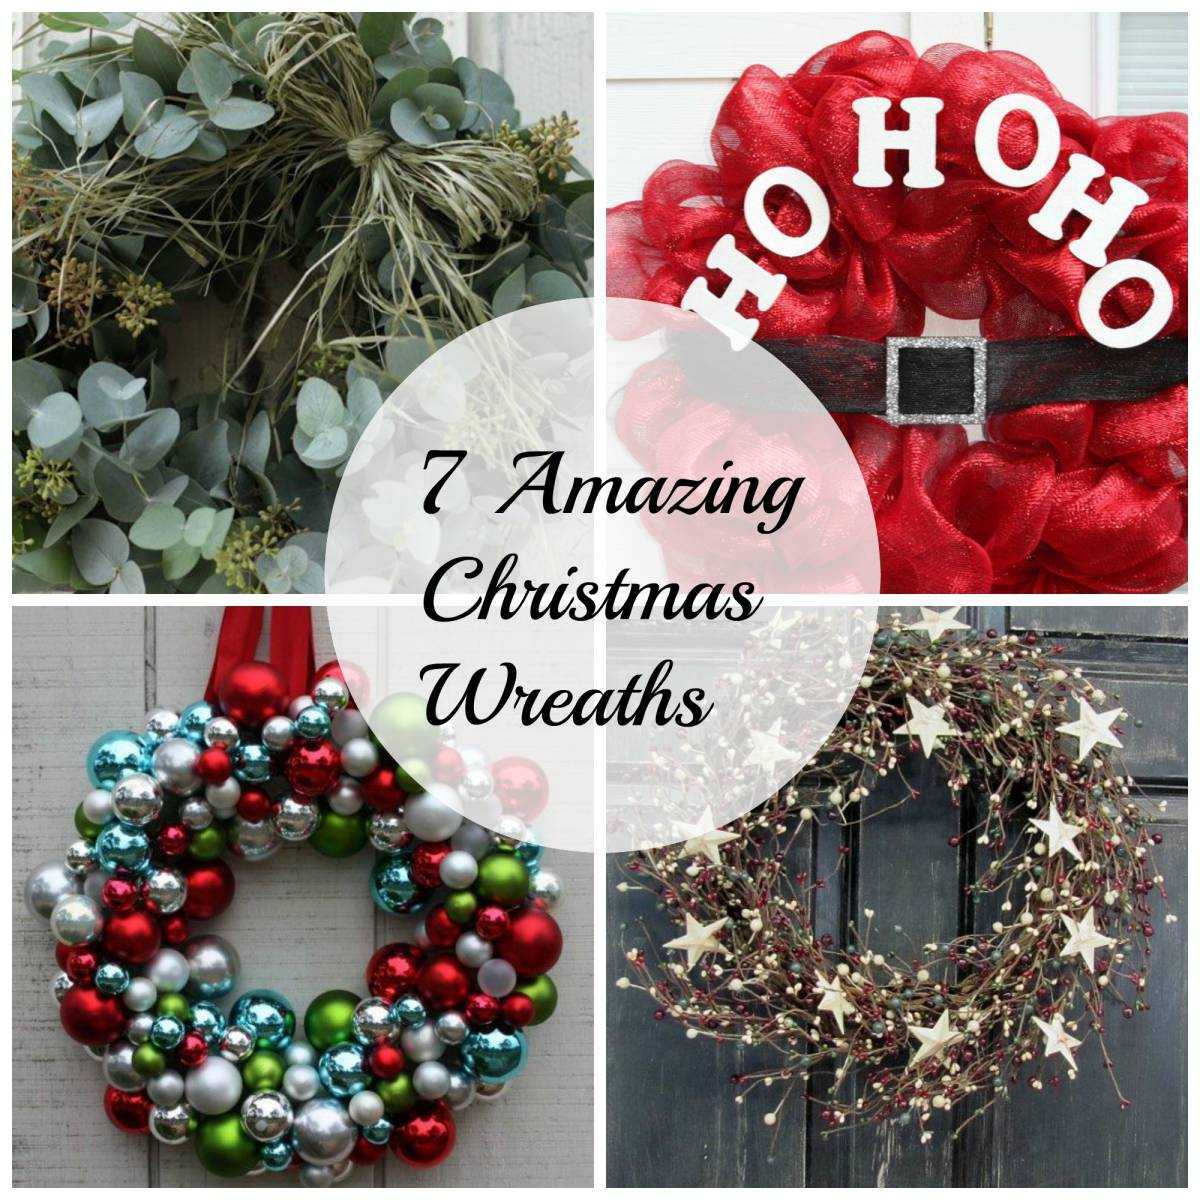 7 Amazing Christmas Wreaths-Inspired Space